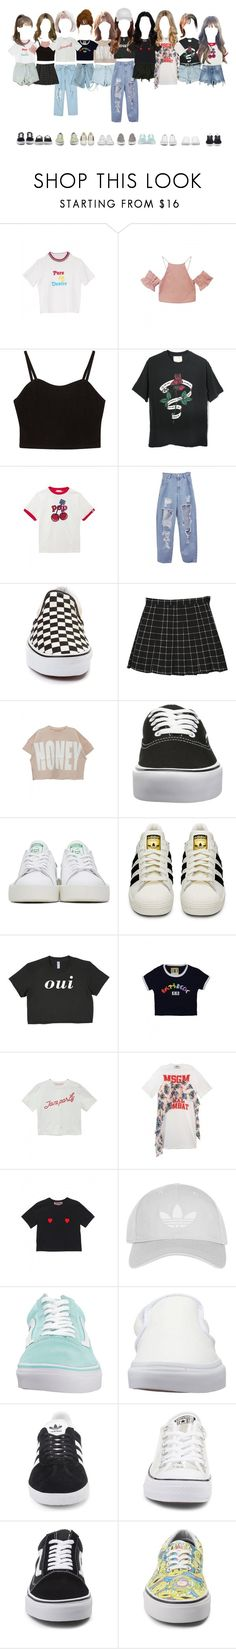 """ARIA •• practice"" by lumin-aria ❤ liked on Polyvore featuring Vans, StyleNanda, adidas Originals, adidas, Topshop and Converse"